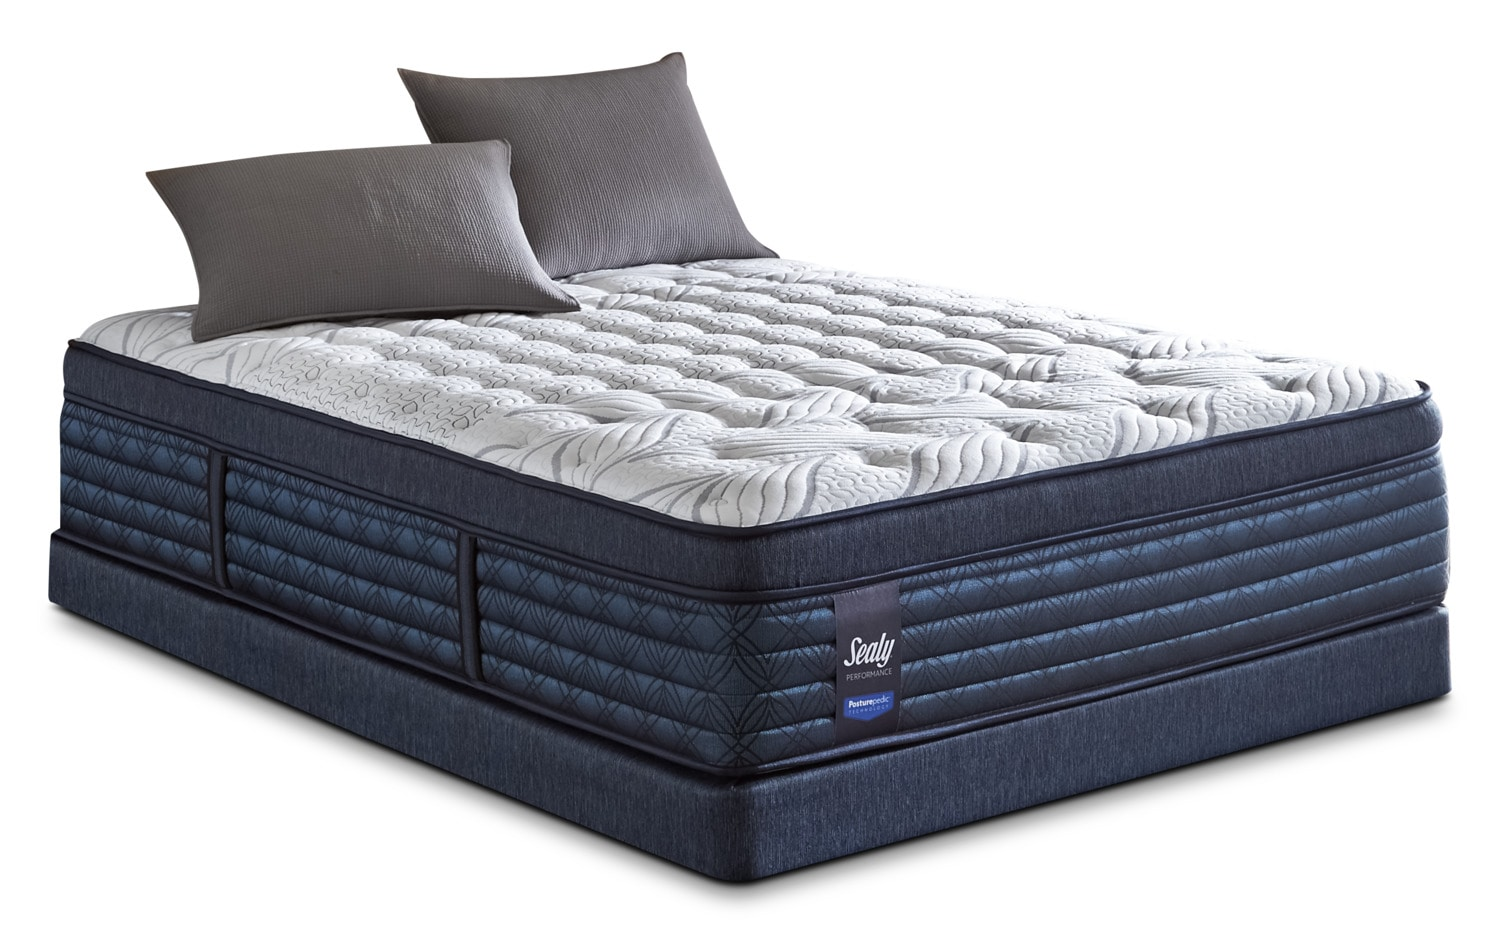 Sealy Posturepedic ProBack Hockenheim Euro-Top Firm Queen Mattress Set